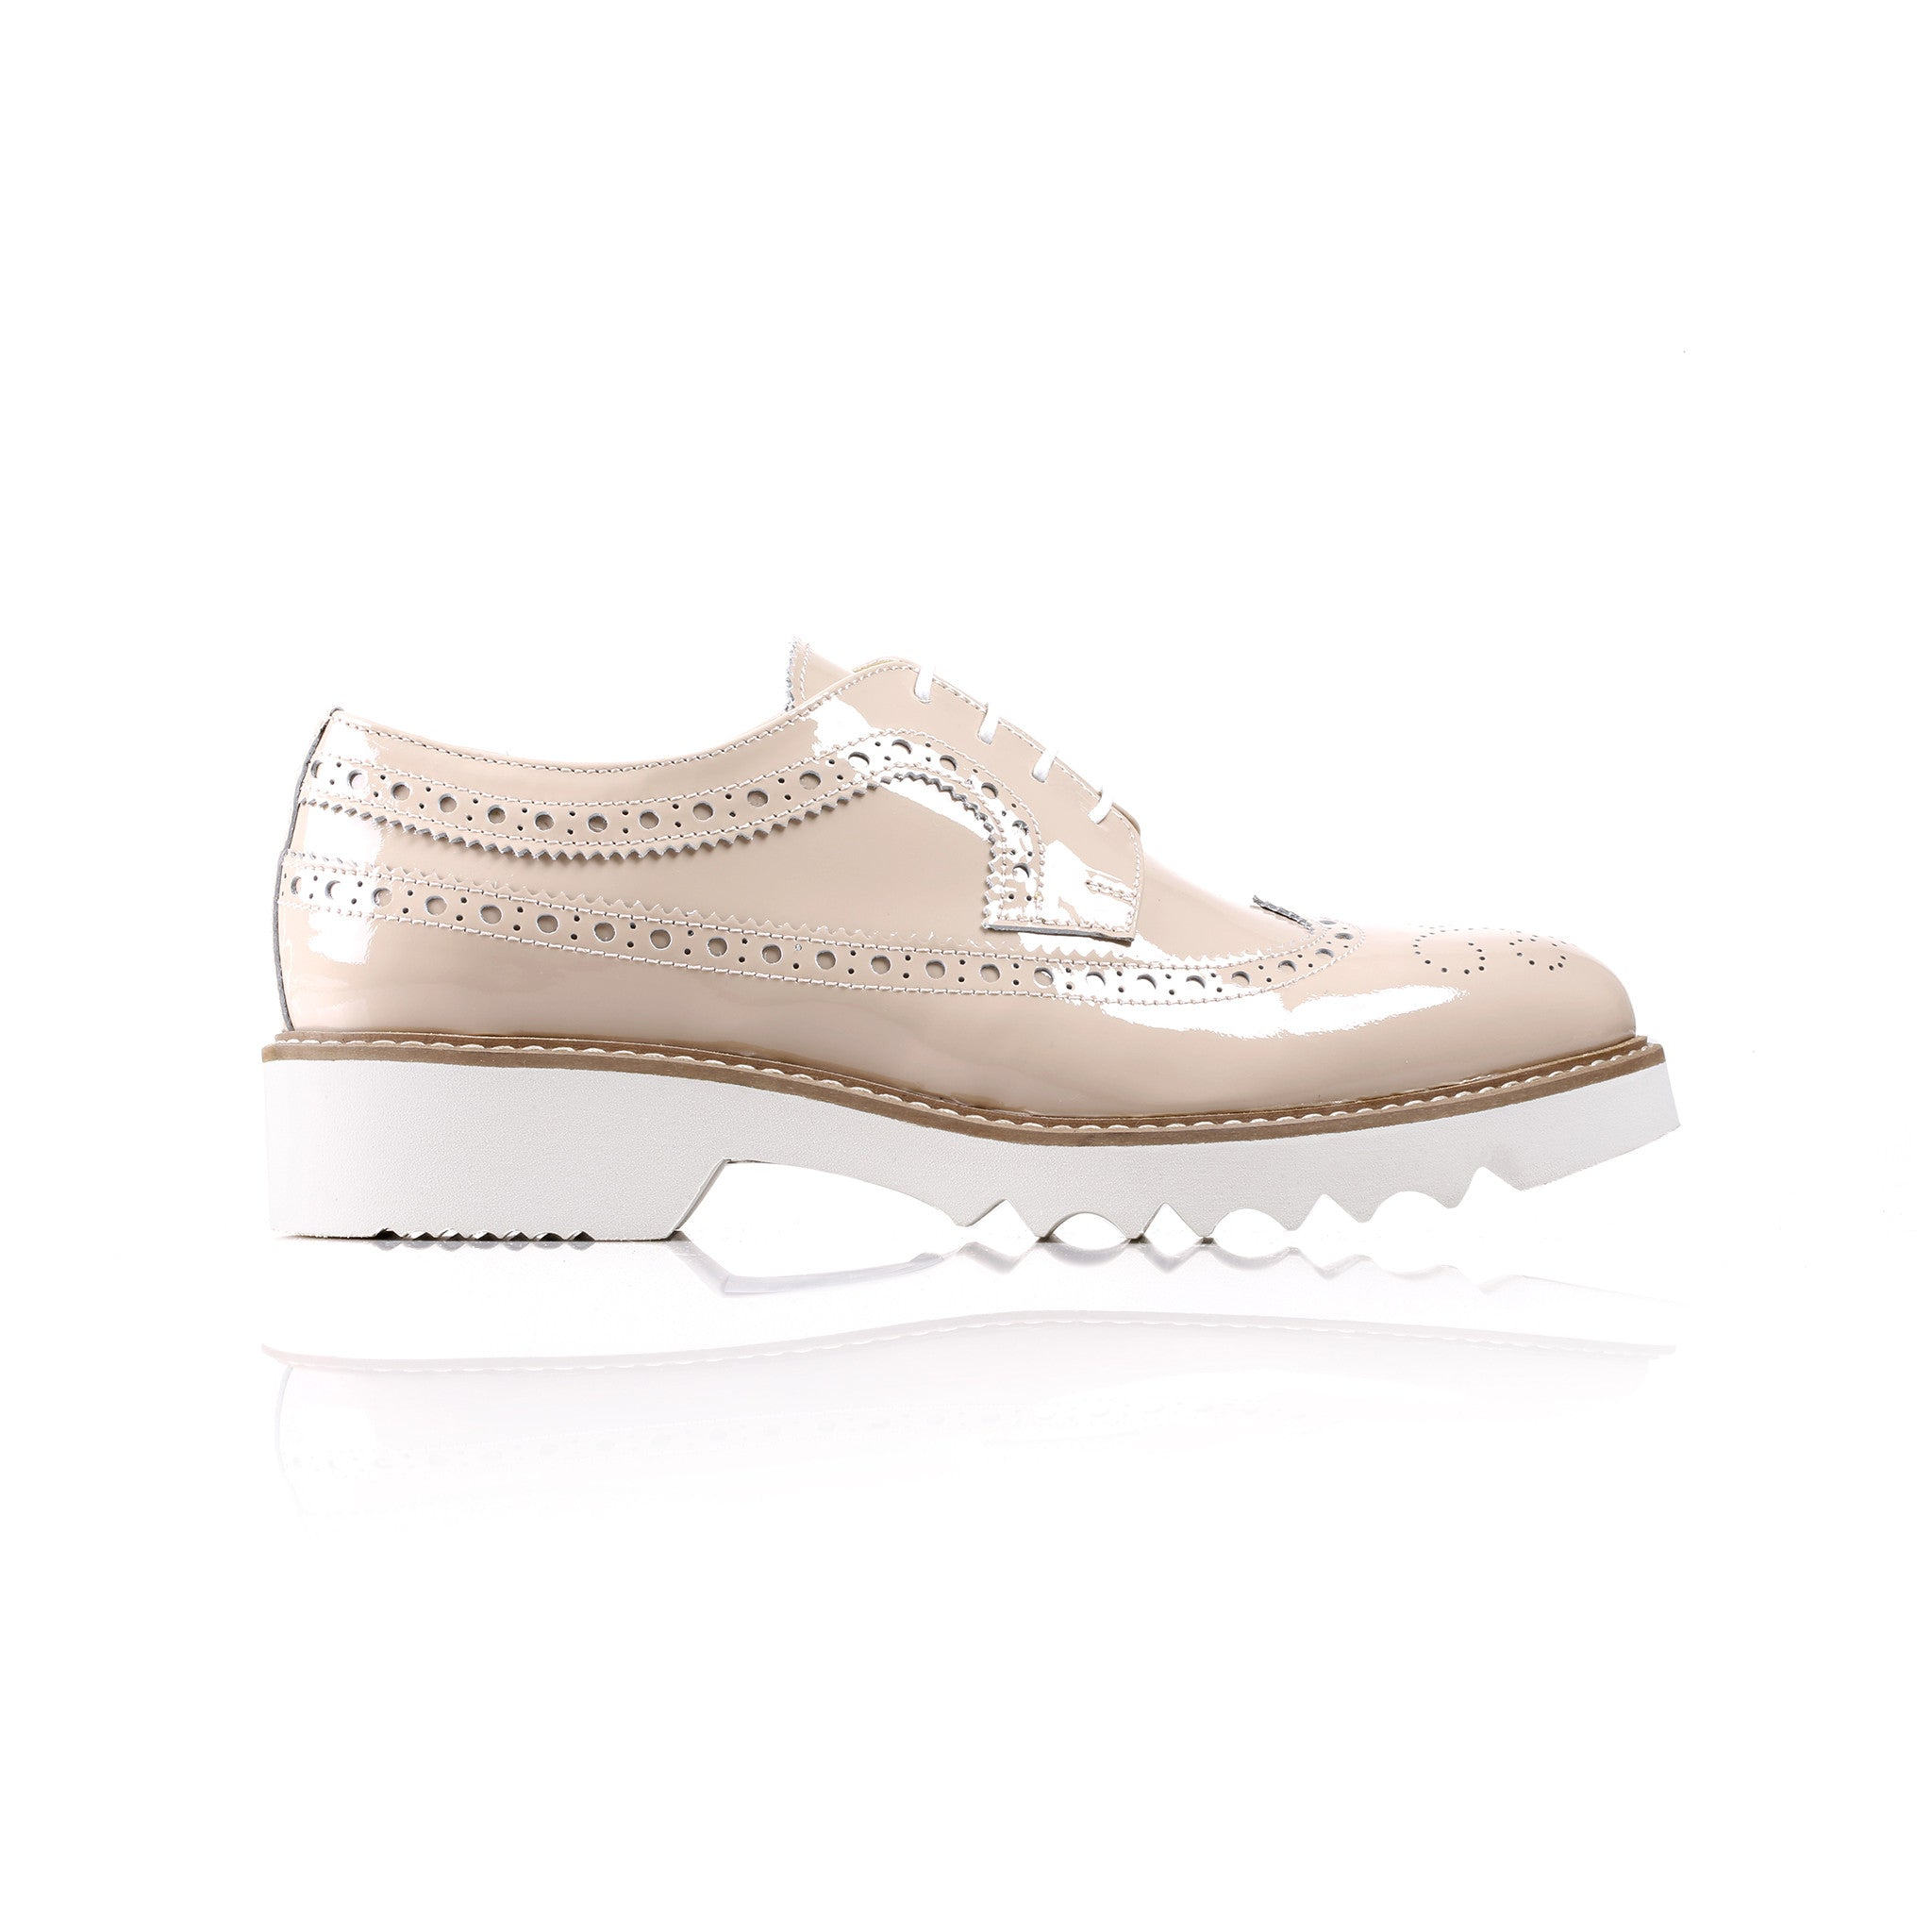 2017 Women's patent nude Brogue Wingtip